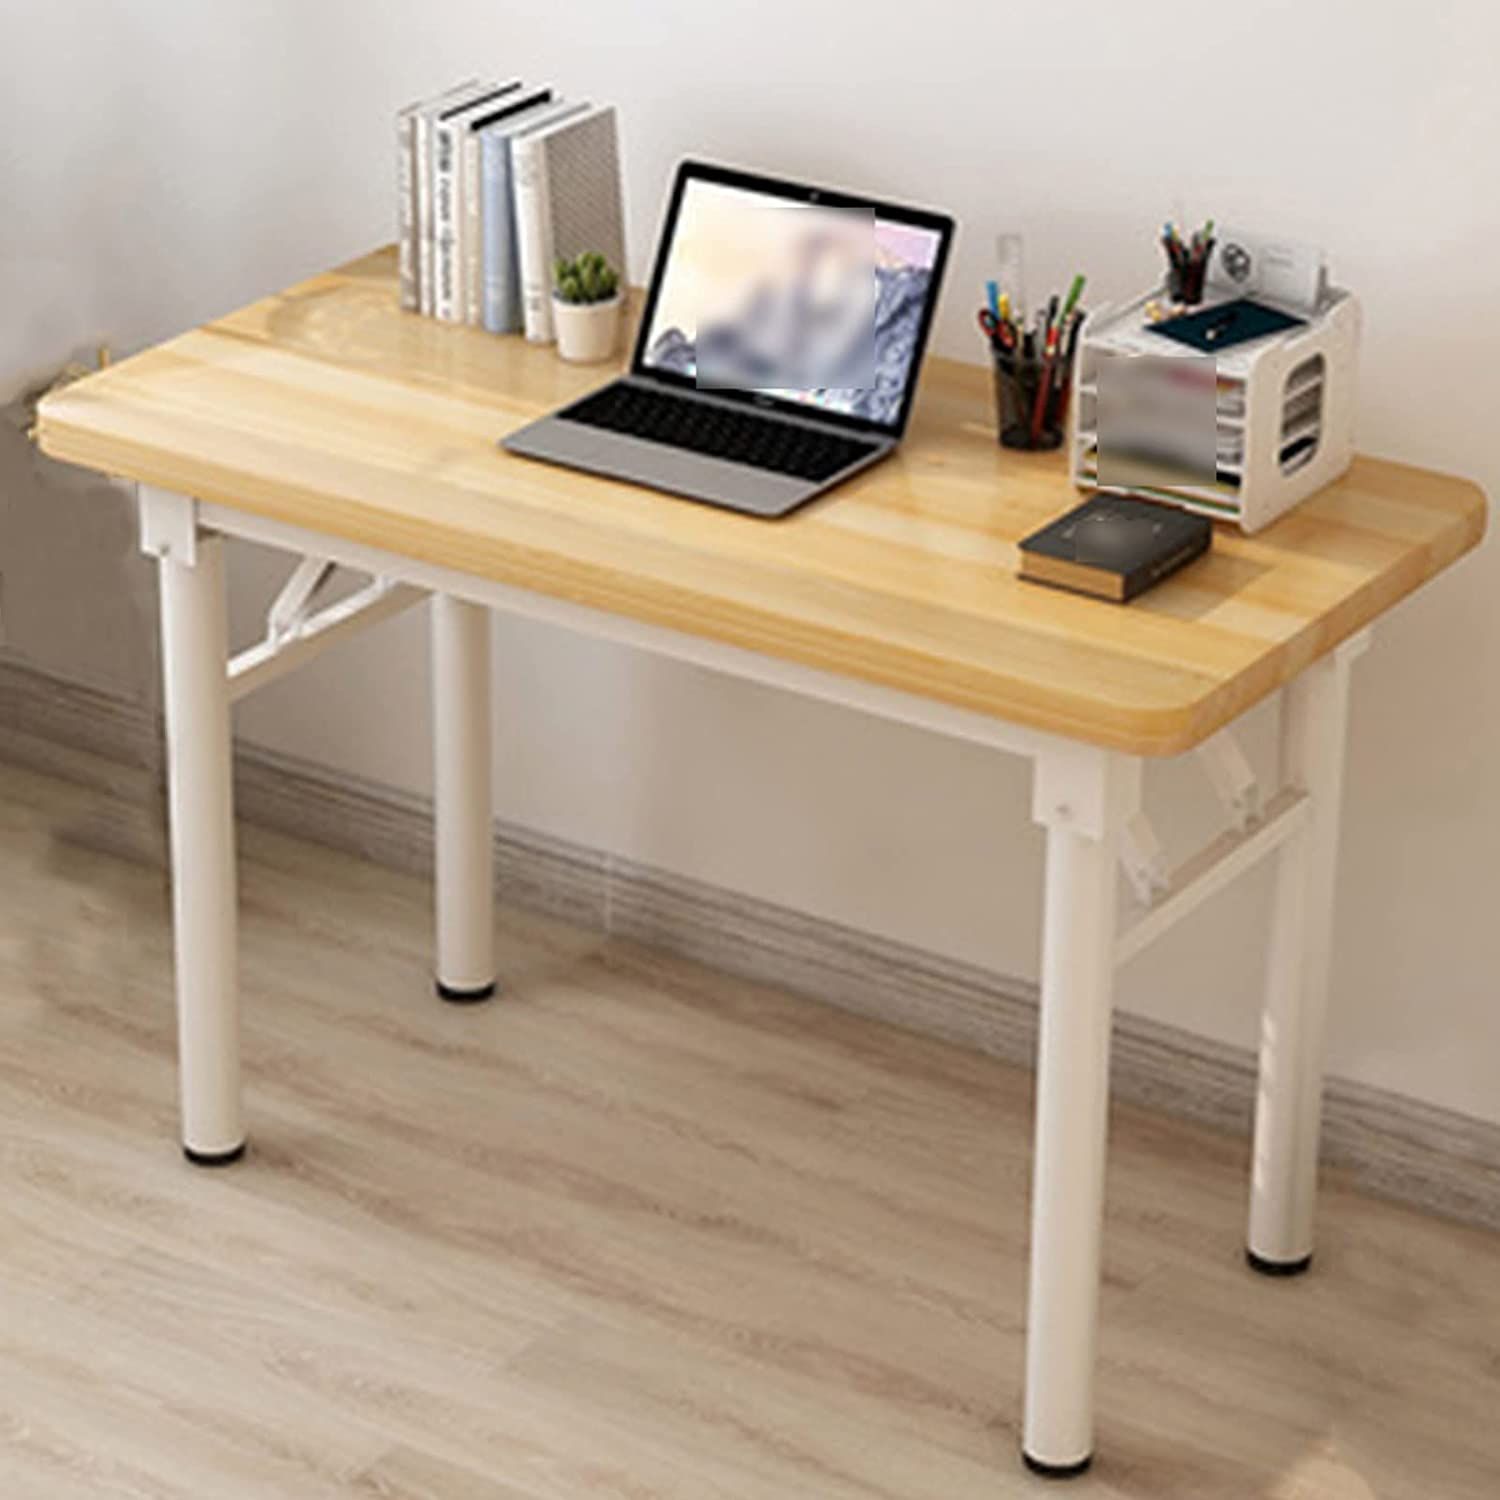 Seasonal Wrap Introduction MARYYUN Max 69% OFF Modern Simple Small Space Laptop Standing Home Desk Des